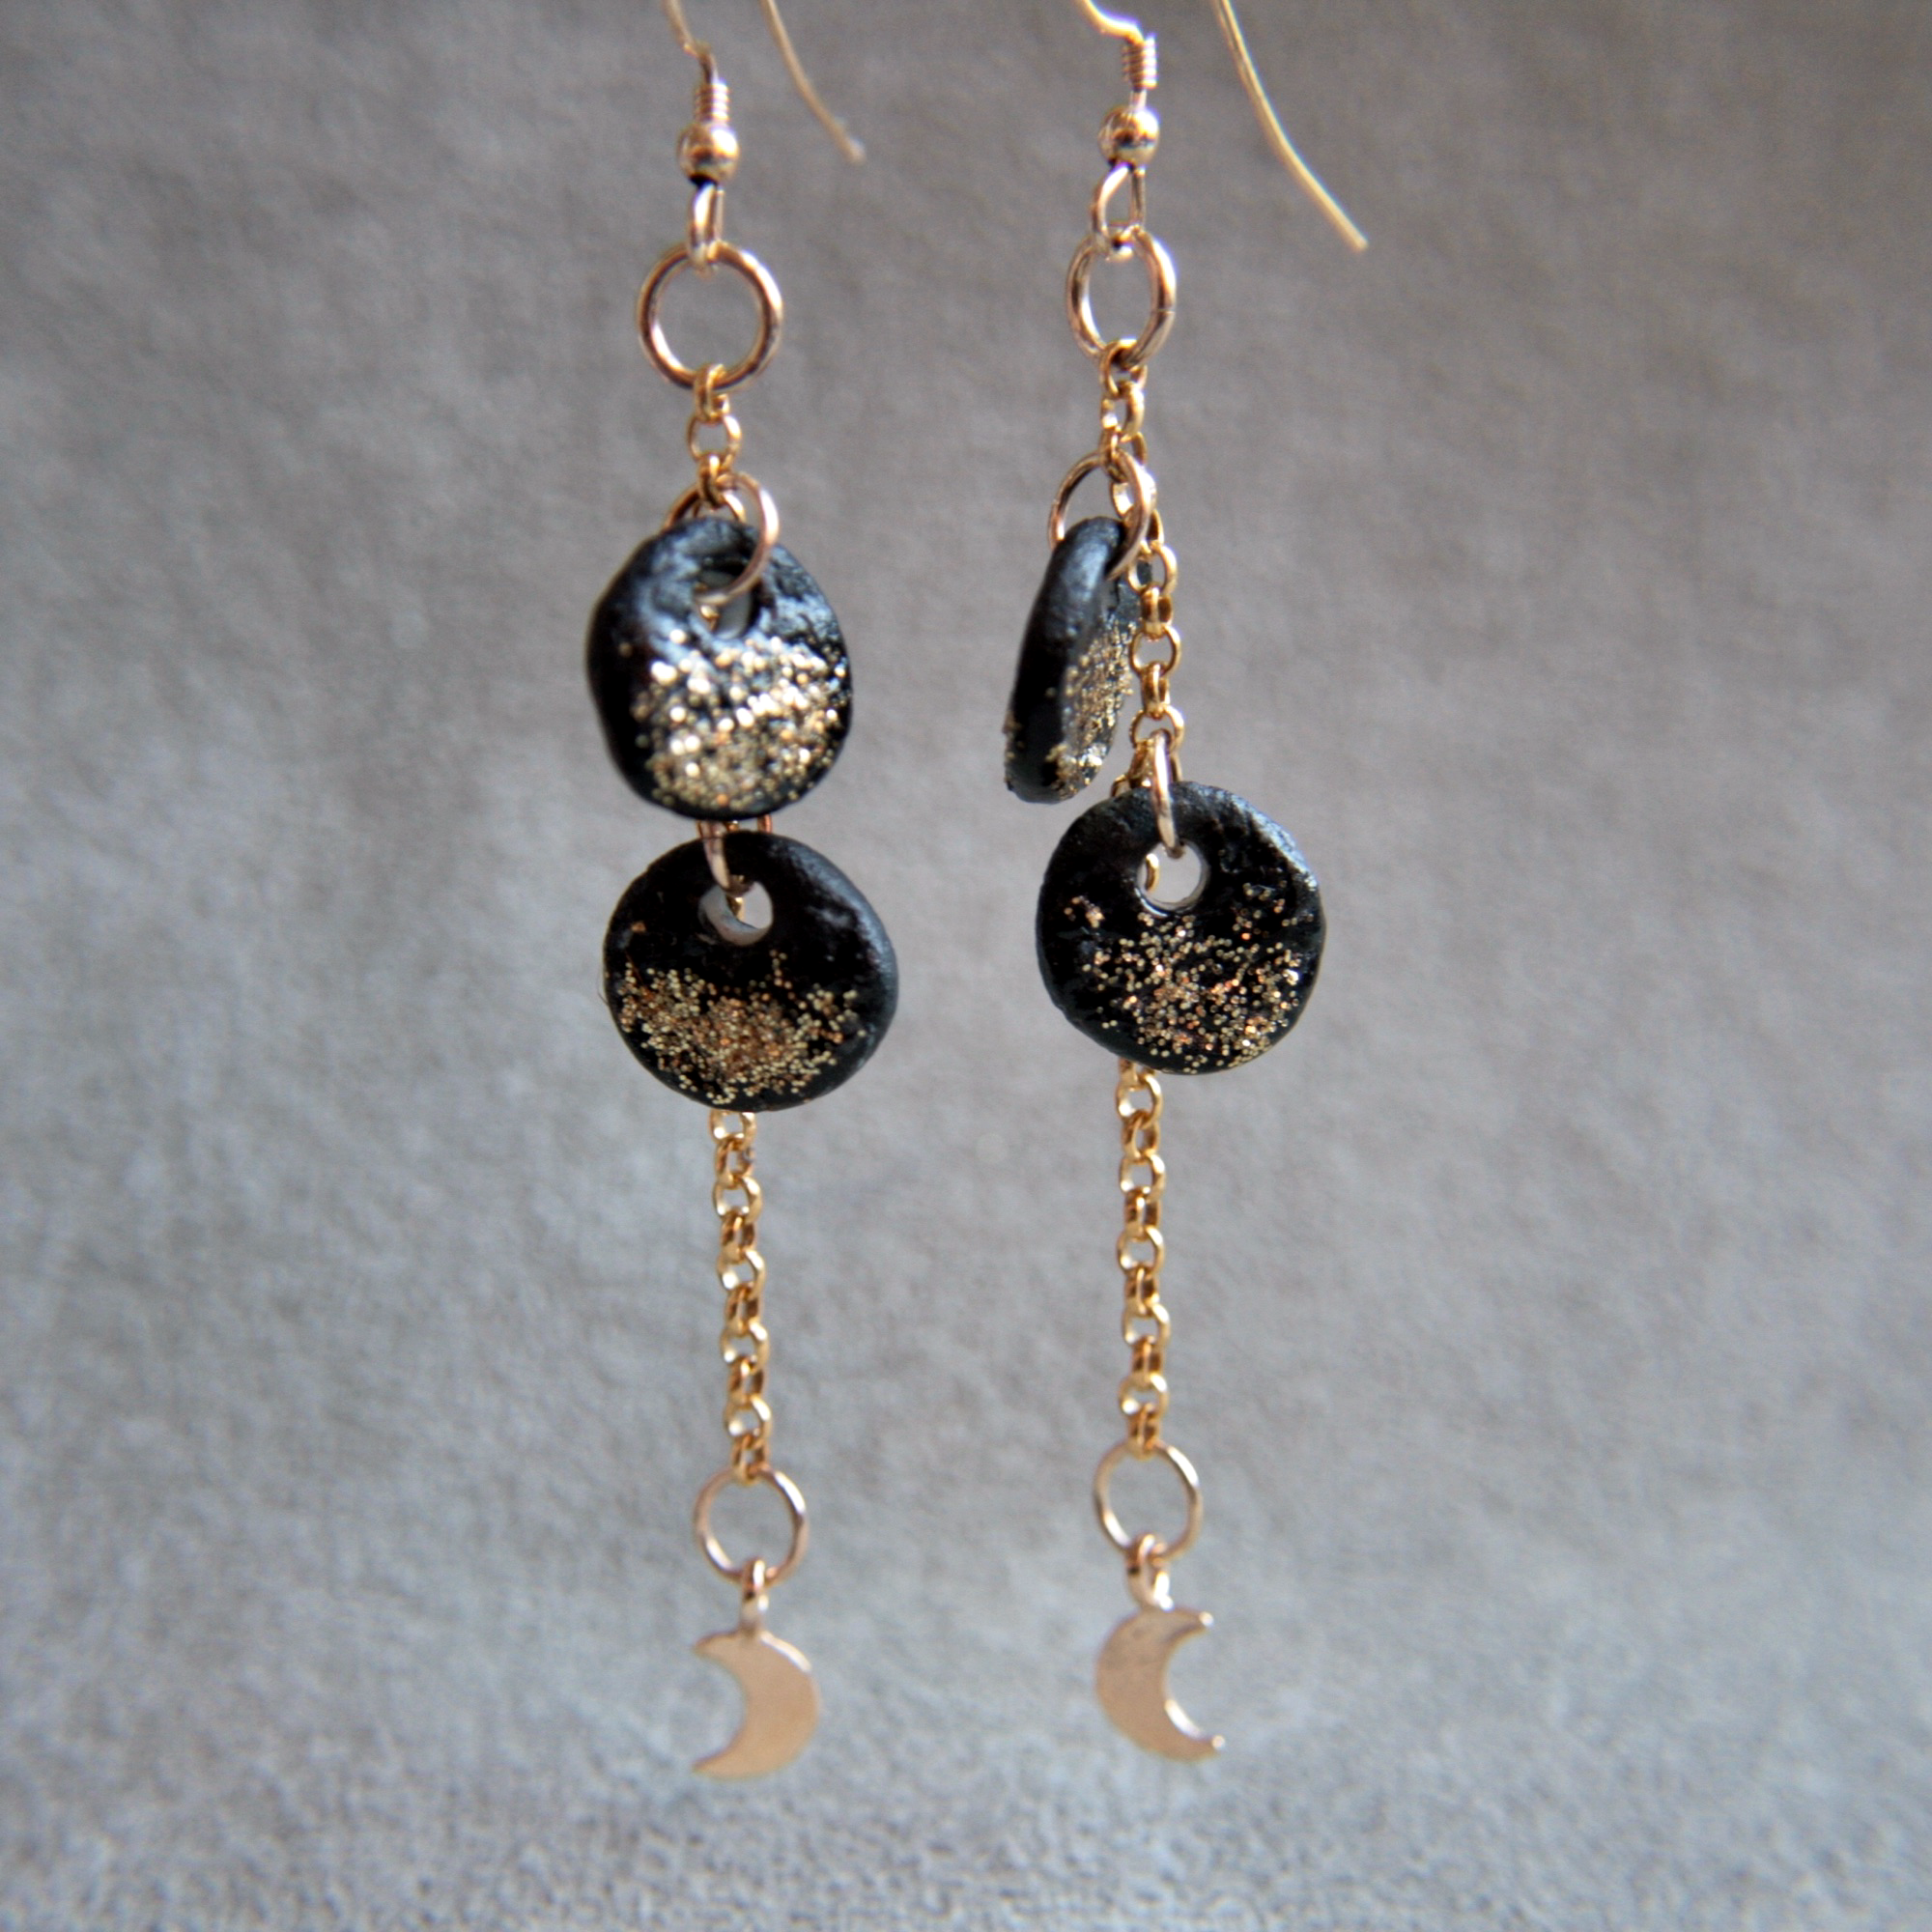 gold earrins with two moons and hanging disc